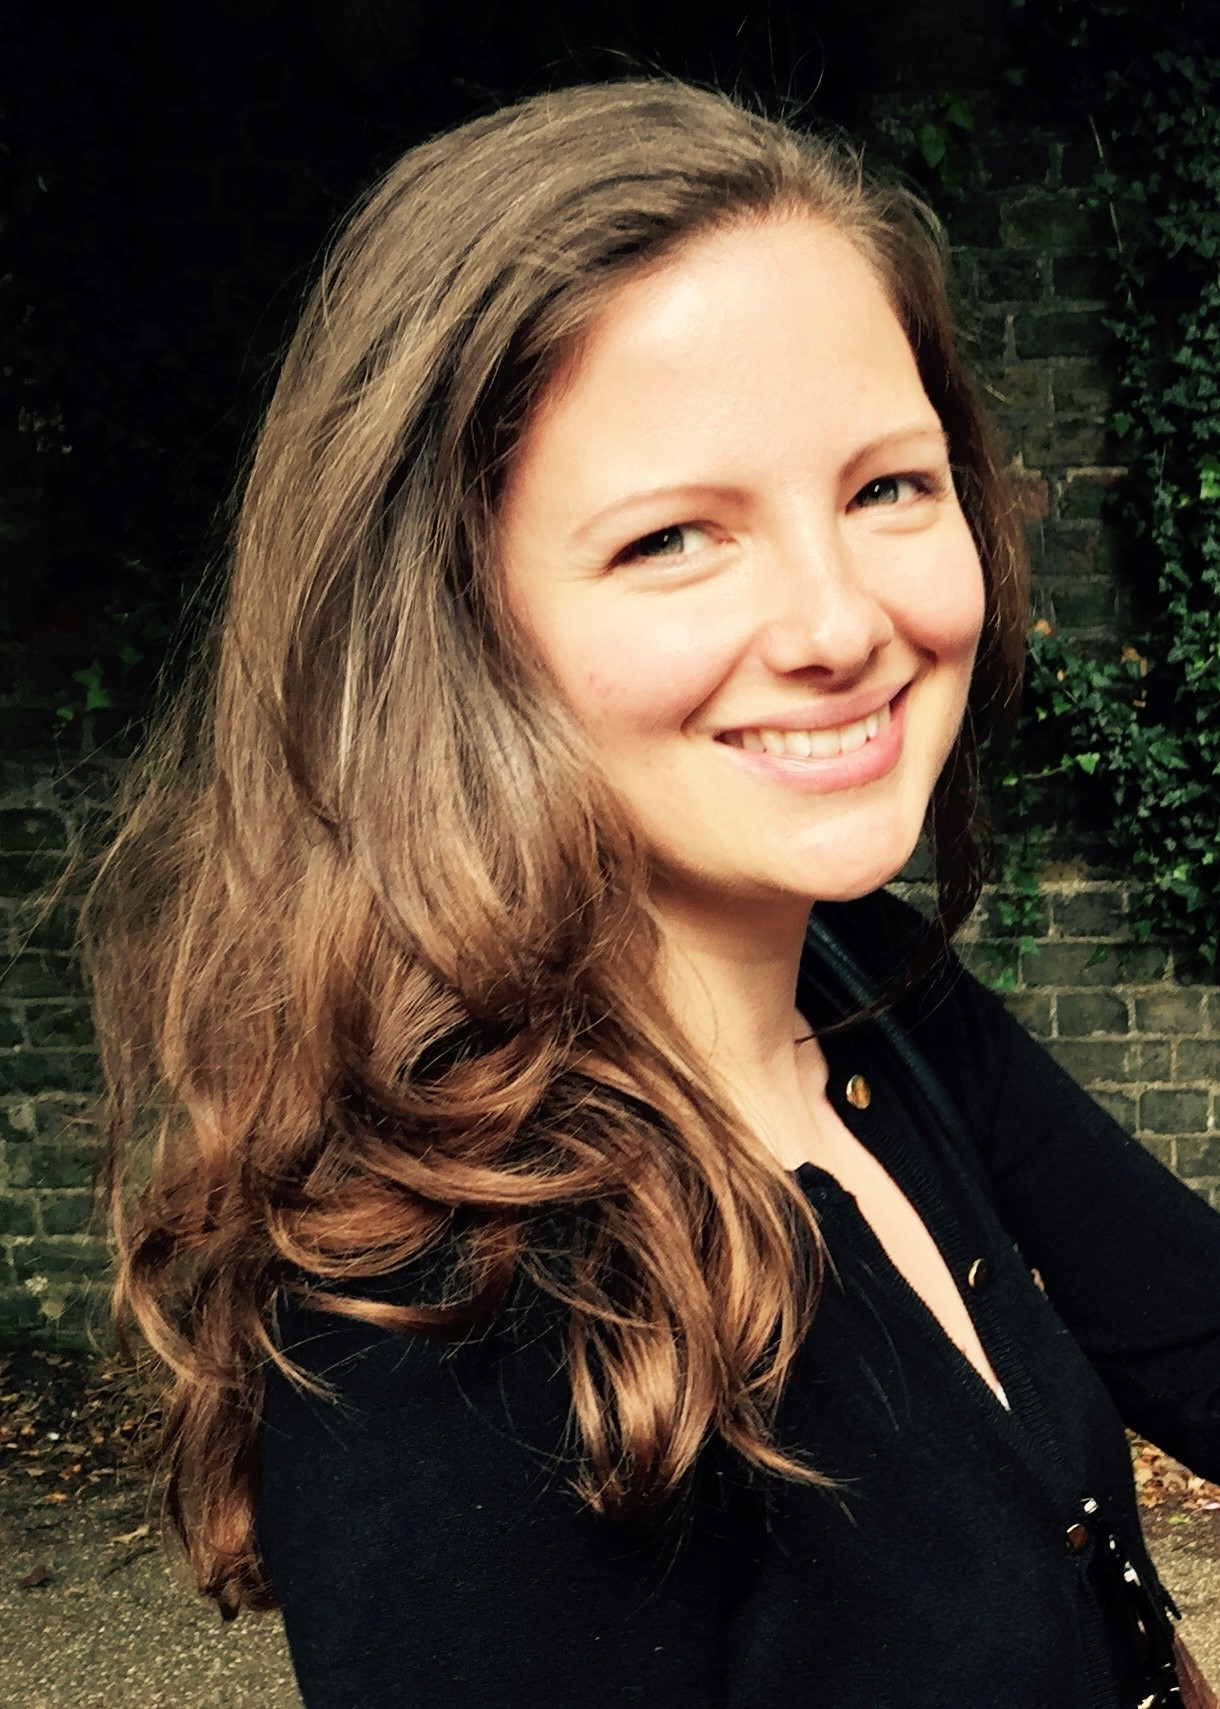 Kate Young (née Camiller) SHHS 1999 - 'Being at South Hampstead, where I was a music scholar and played the piano, gave me the confidence to believe in myself and pursue my dreams. Music has always been a huge part of my life and that's why I am delighted to support the Waterlow Hall campaign'